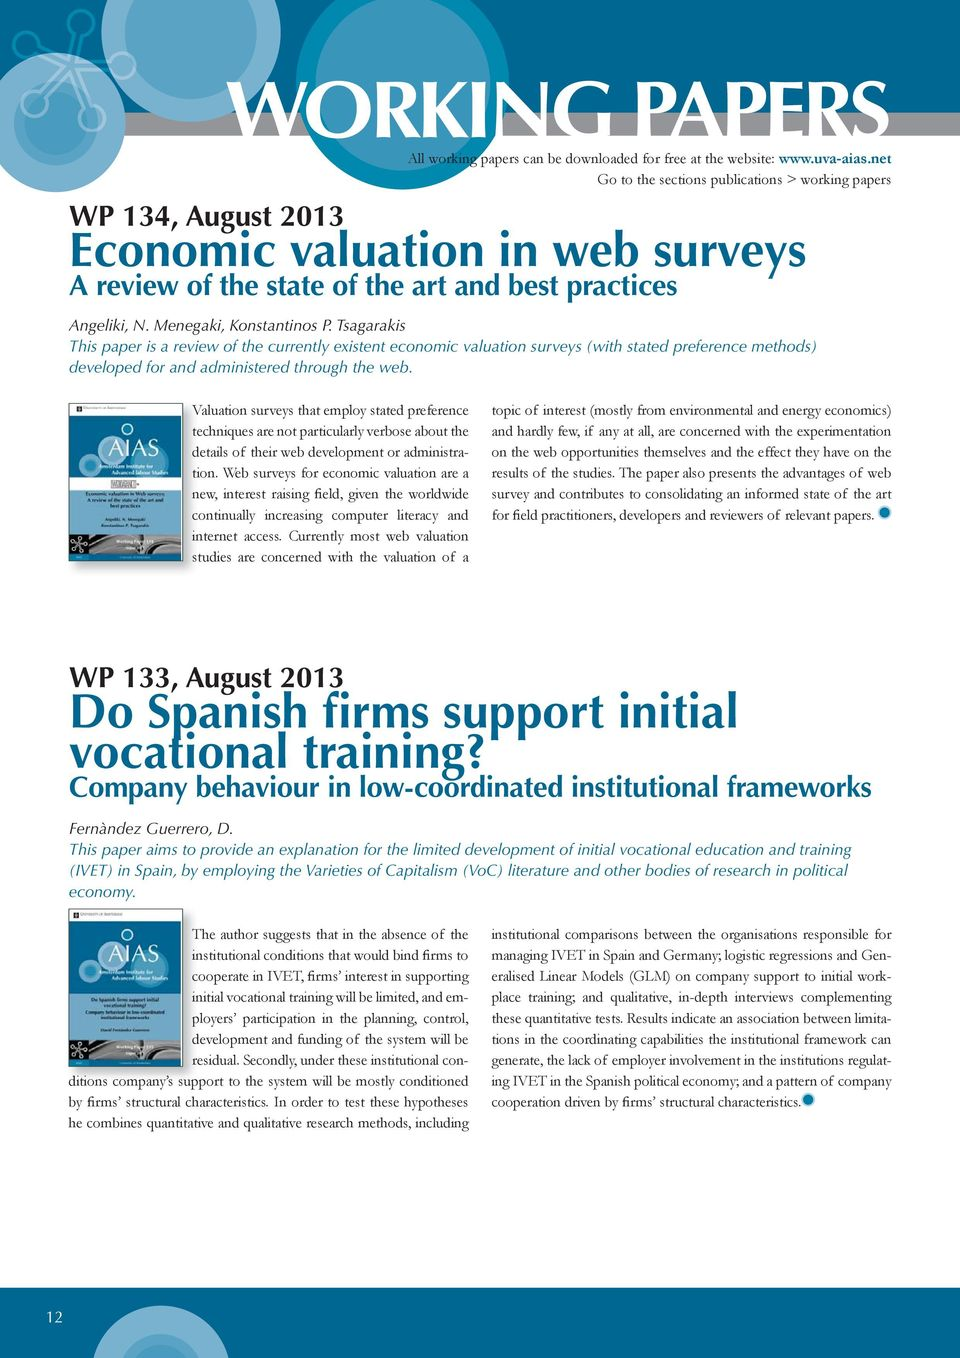 Tsagarakis This paper is a review of the currently existent economic valuation surveys (with stated preference methods) developed for and administered through the web.